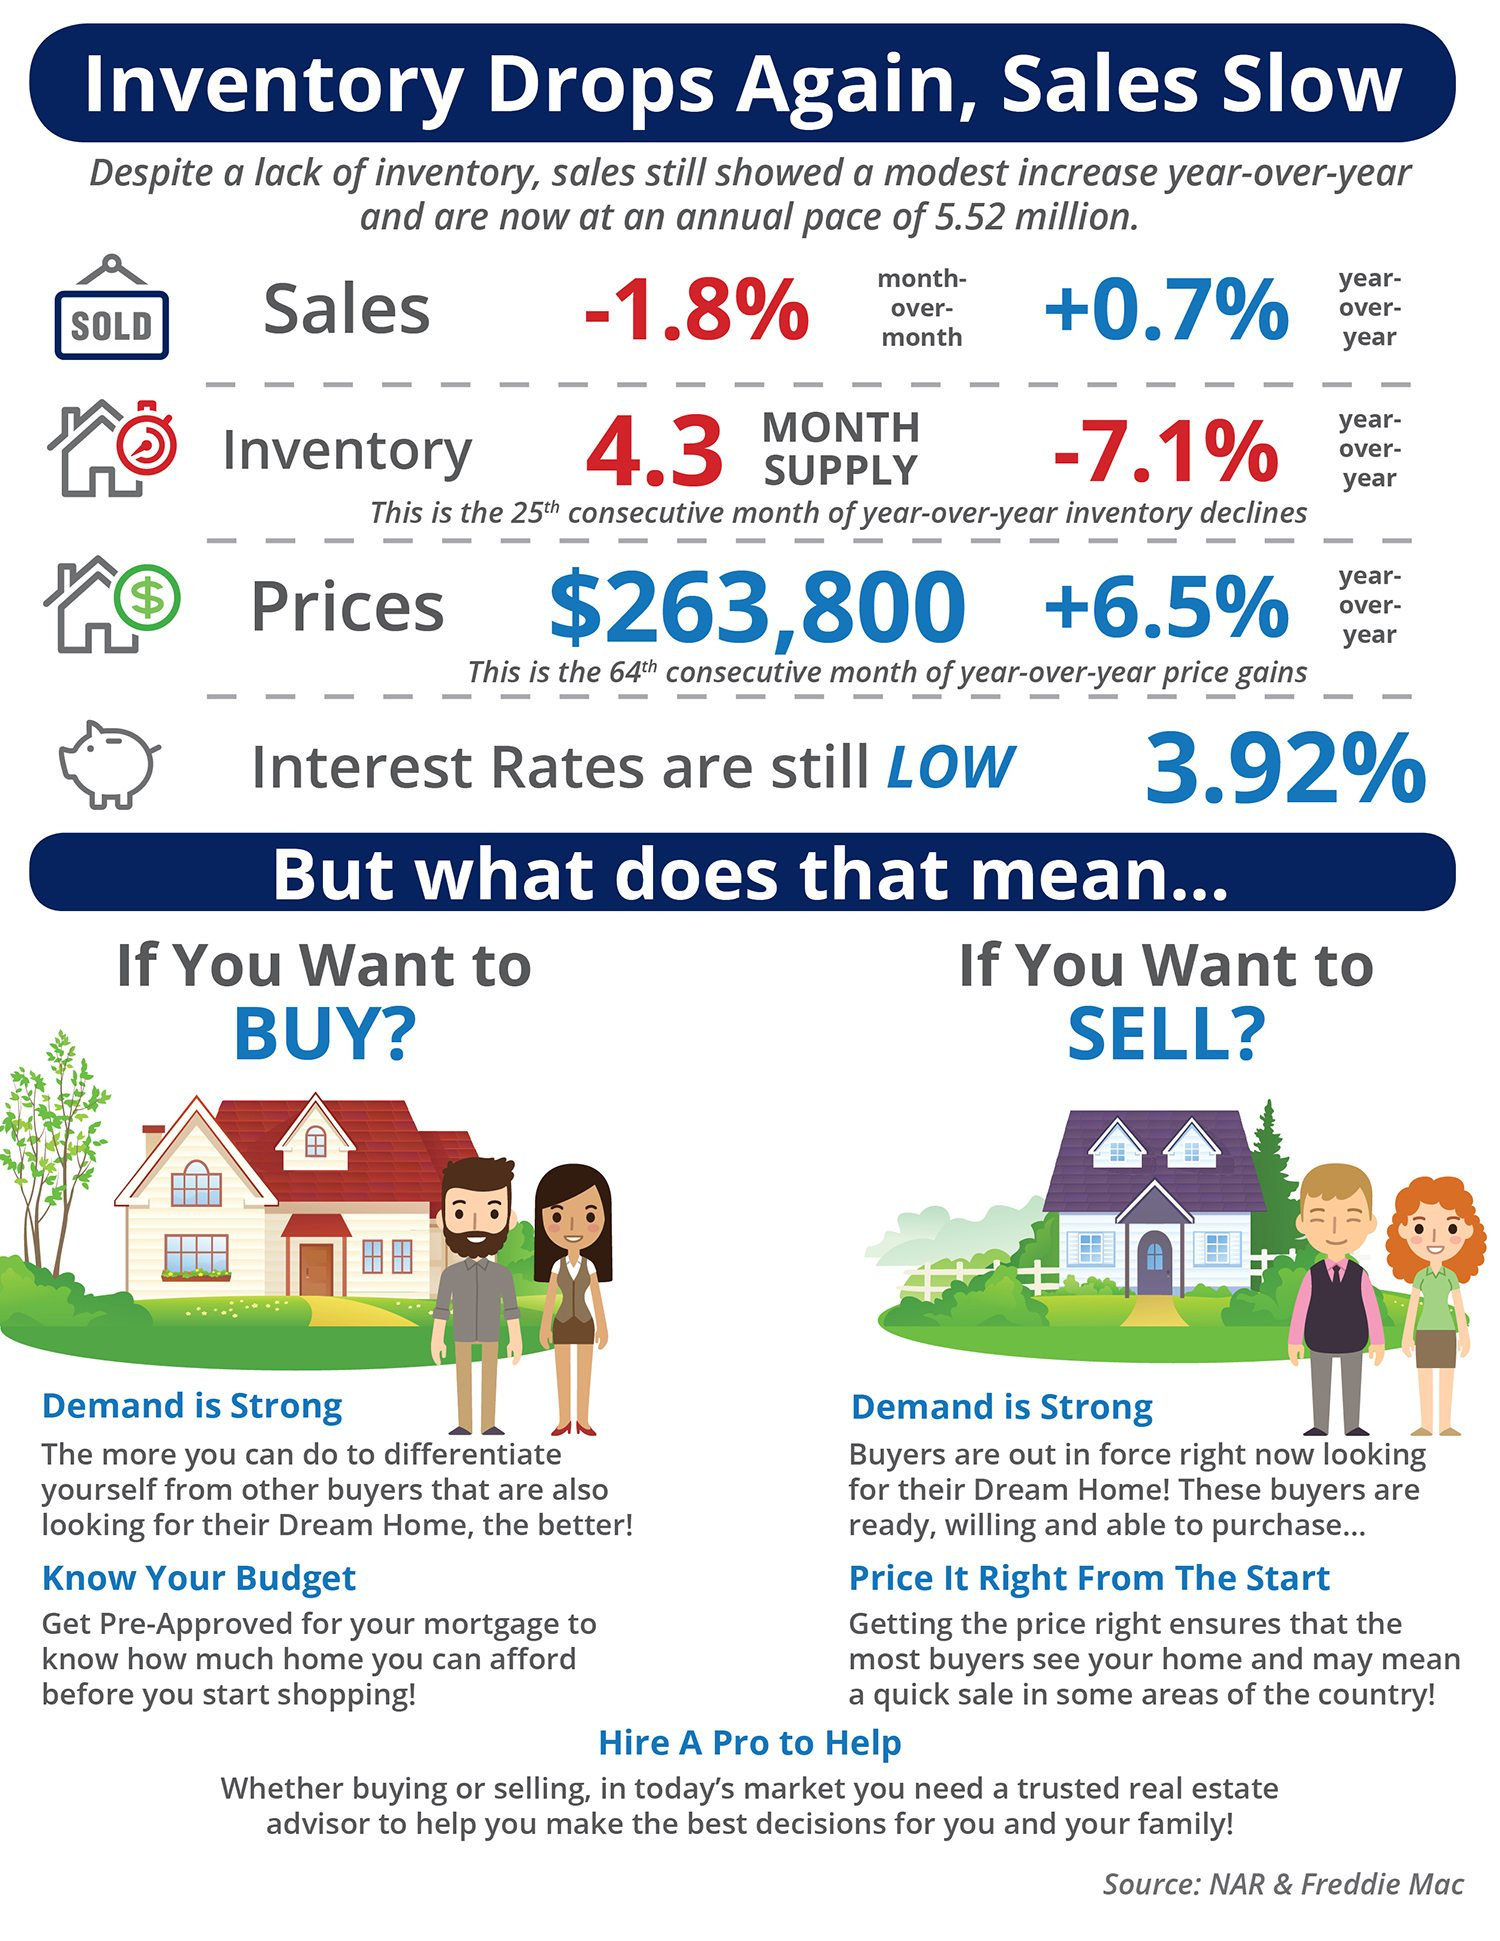 Inventory Drops Again, Sales Slow [INFOGRAPHIC]   Simplifying The Market